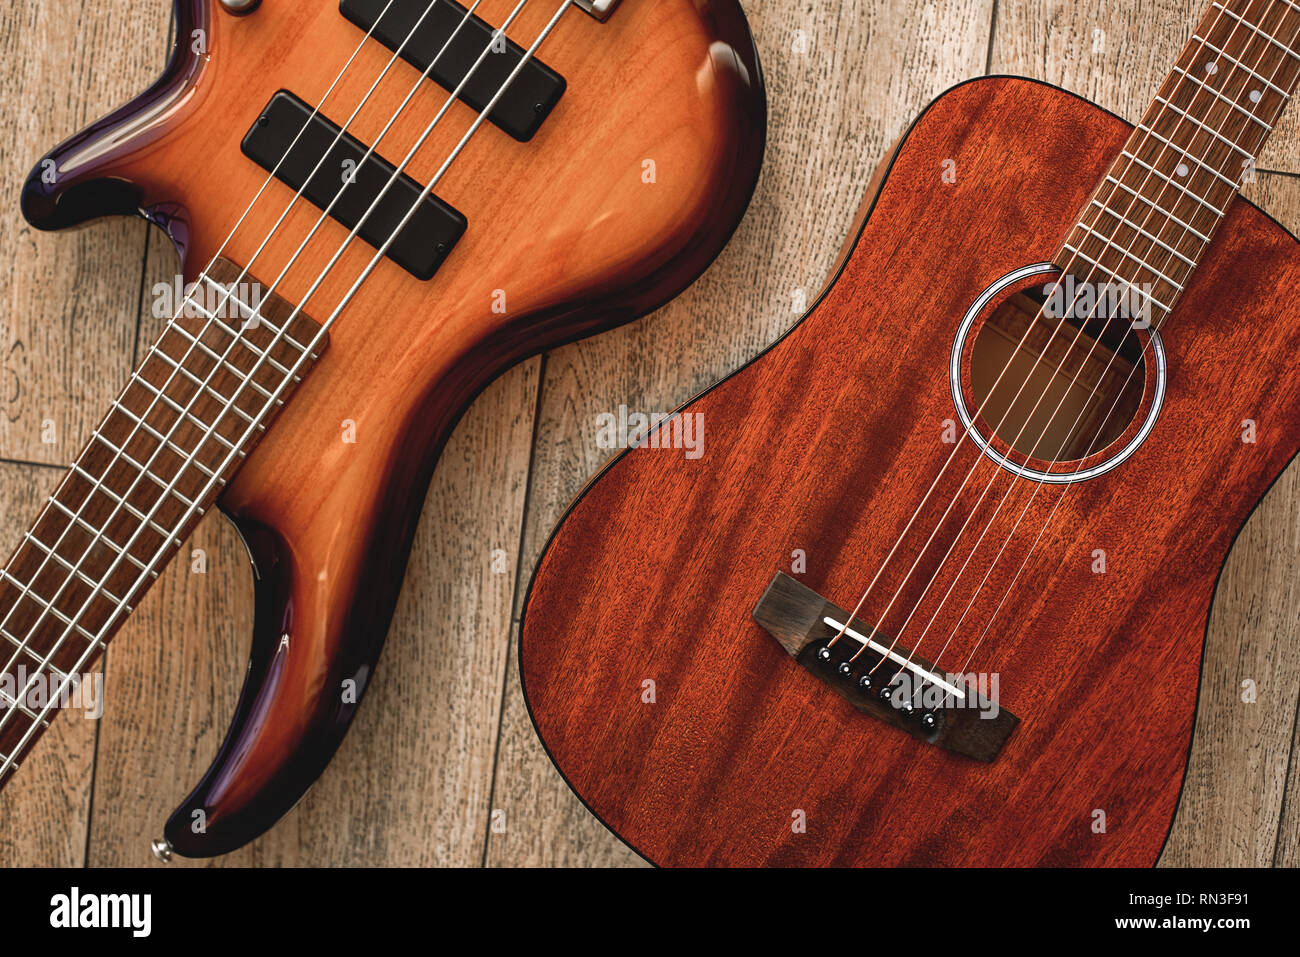 What to choose Top view on two cool musical instruments: acoustic and electric guitars are lying on the wooden floor in a music shop. Musical instruments. Music concept. - Stock Image